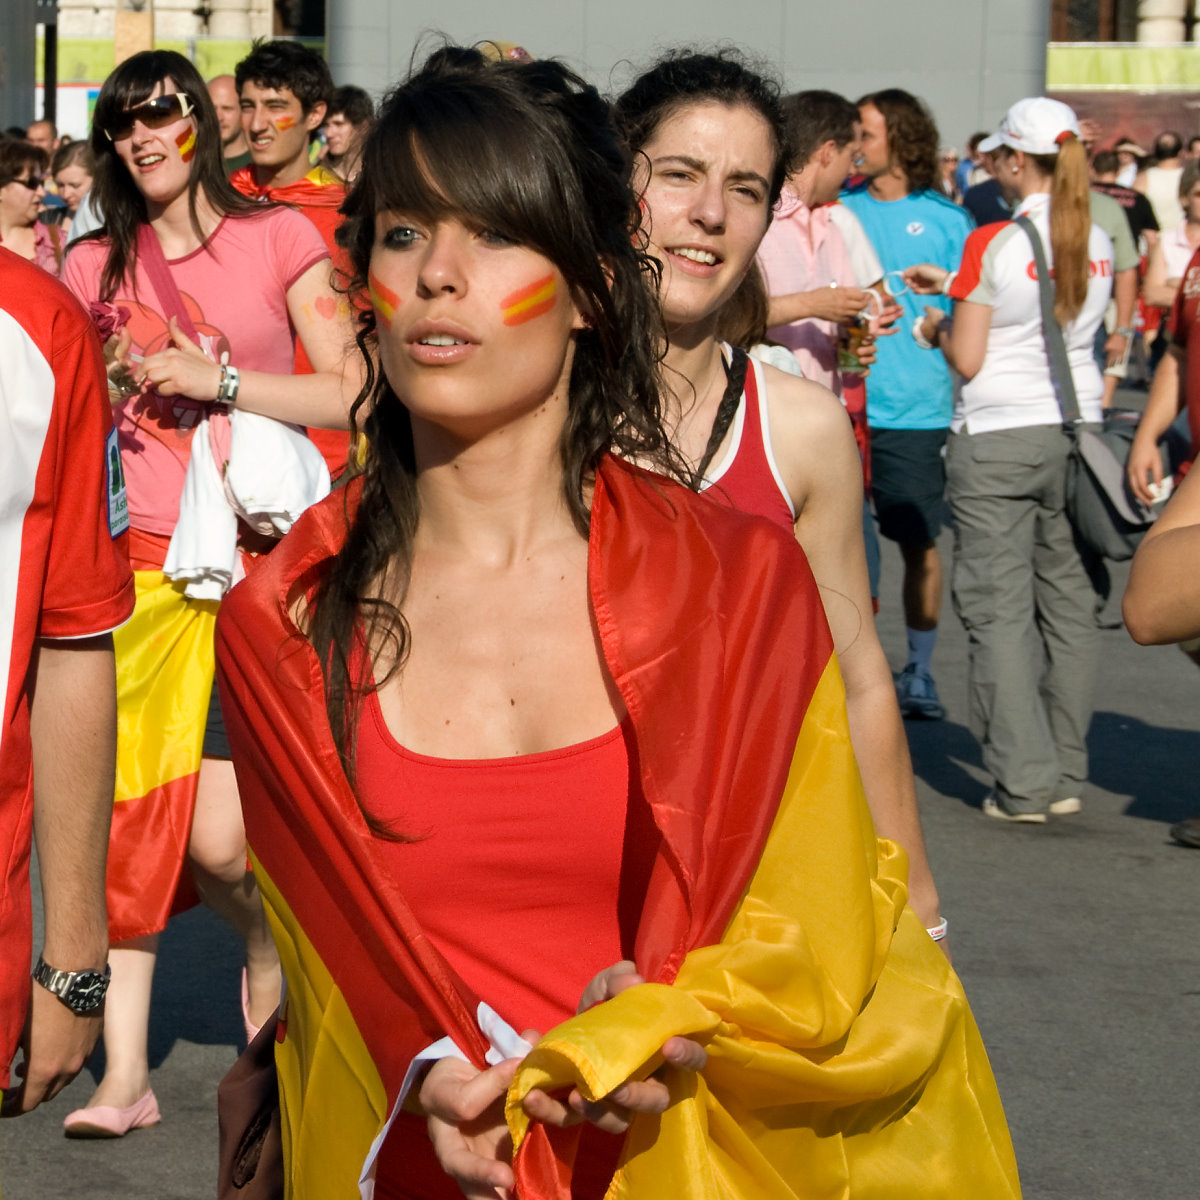 Pictures of spain girls